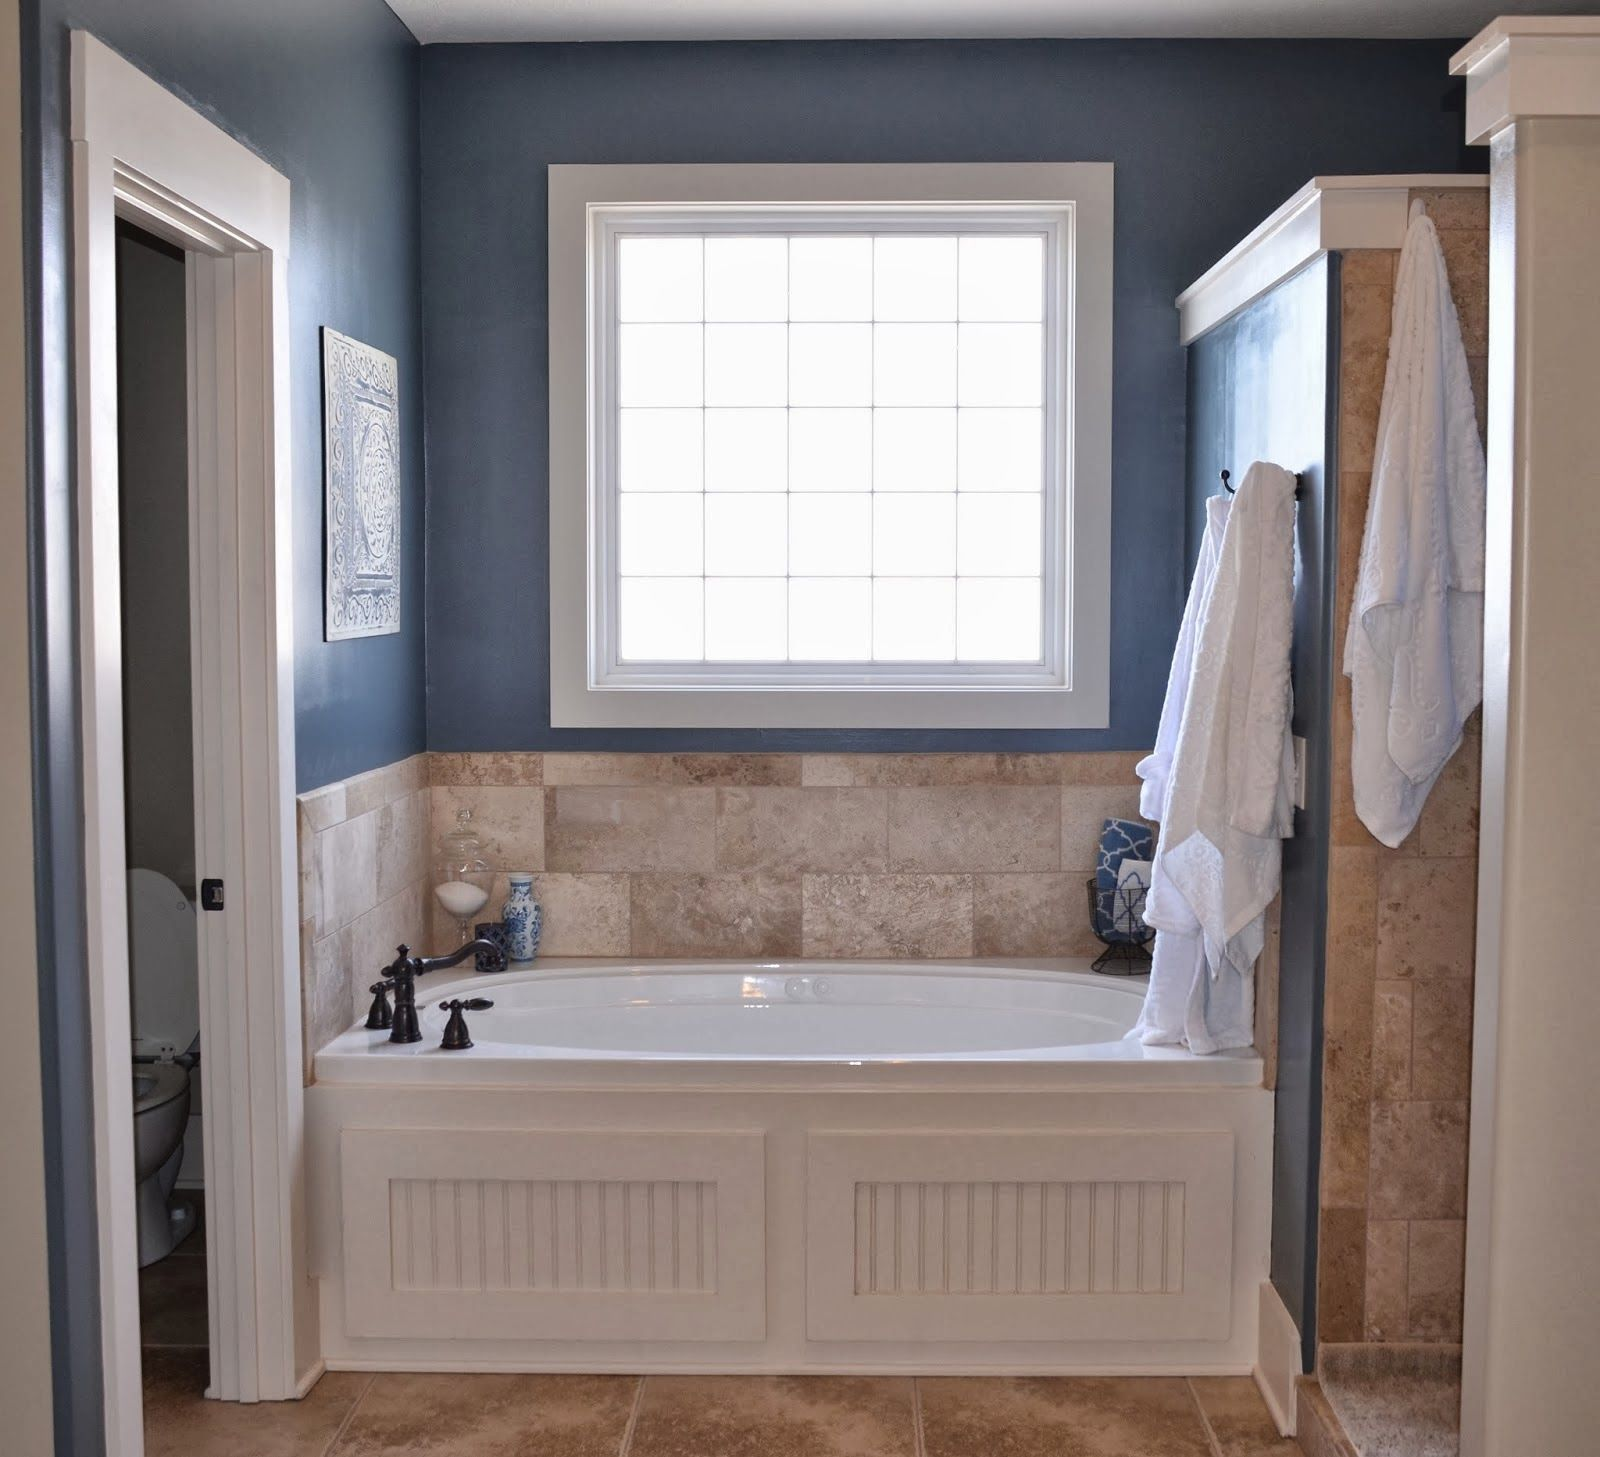 sherwin williams slate tile and sherwin williams urban putty